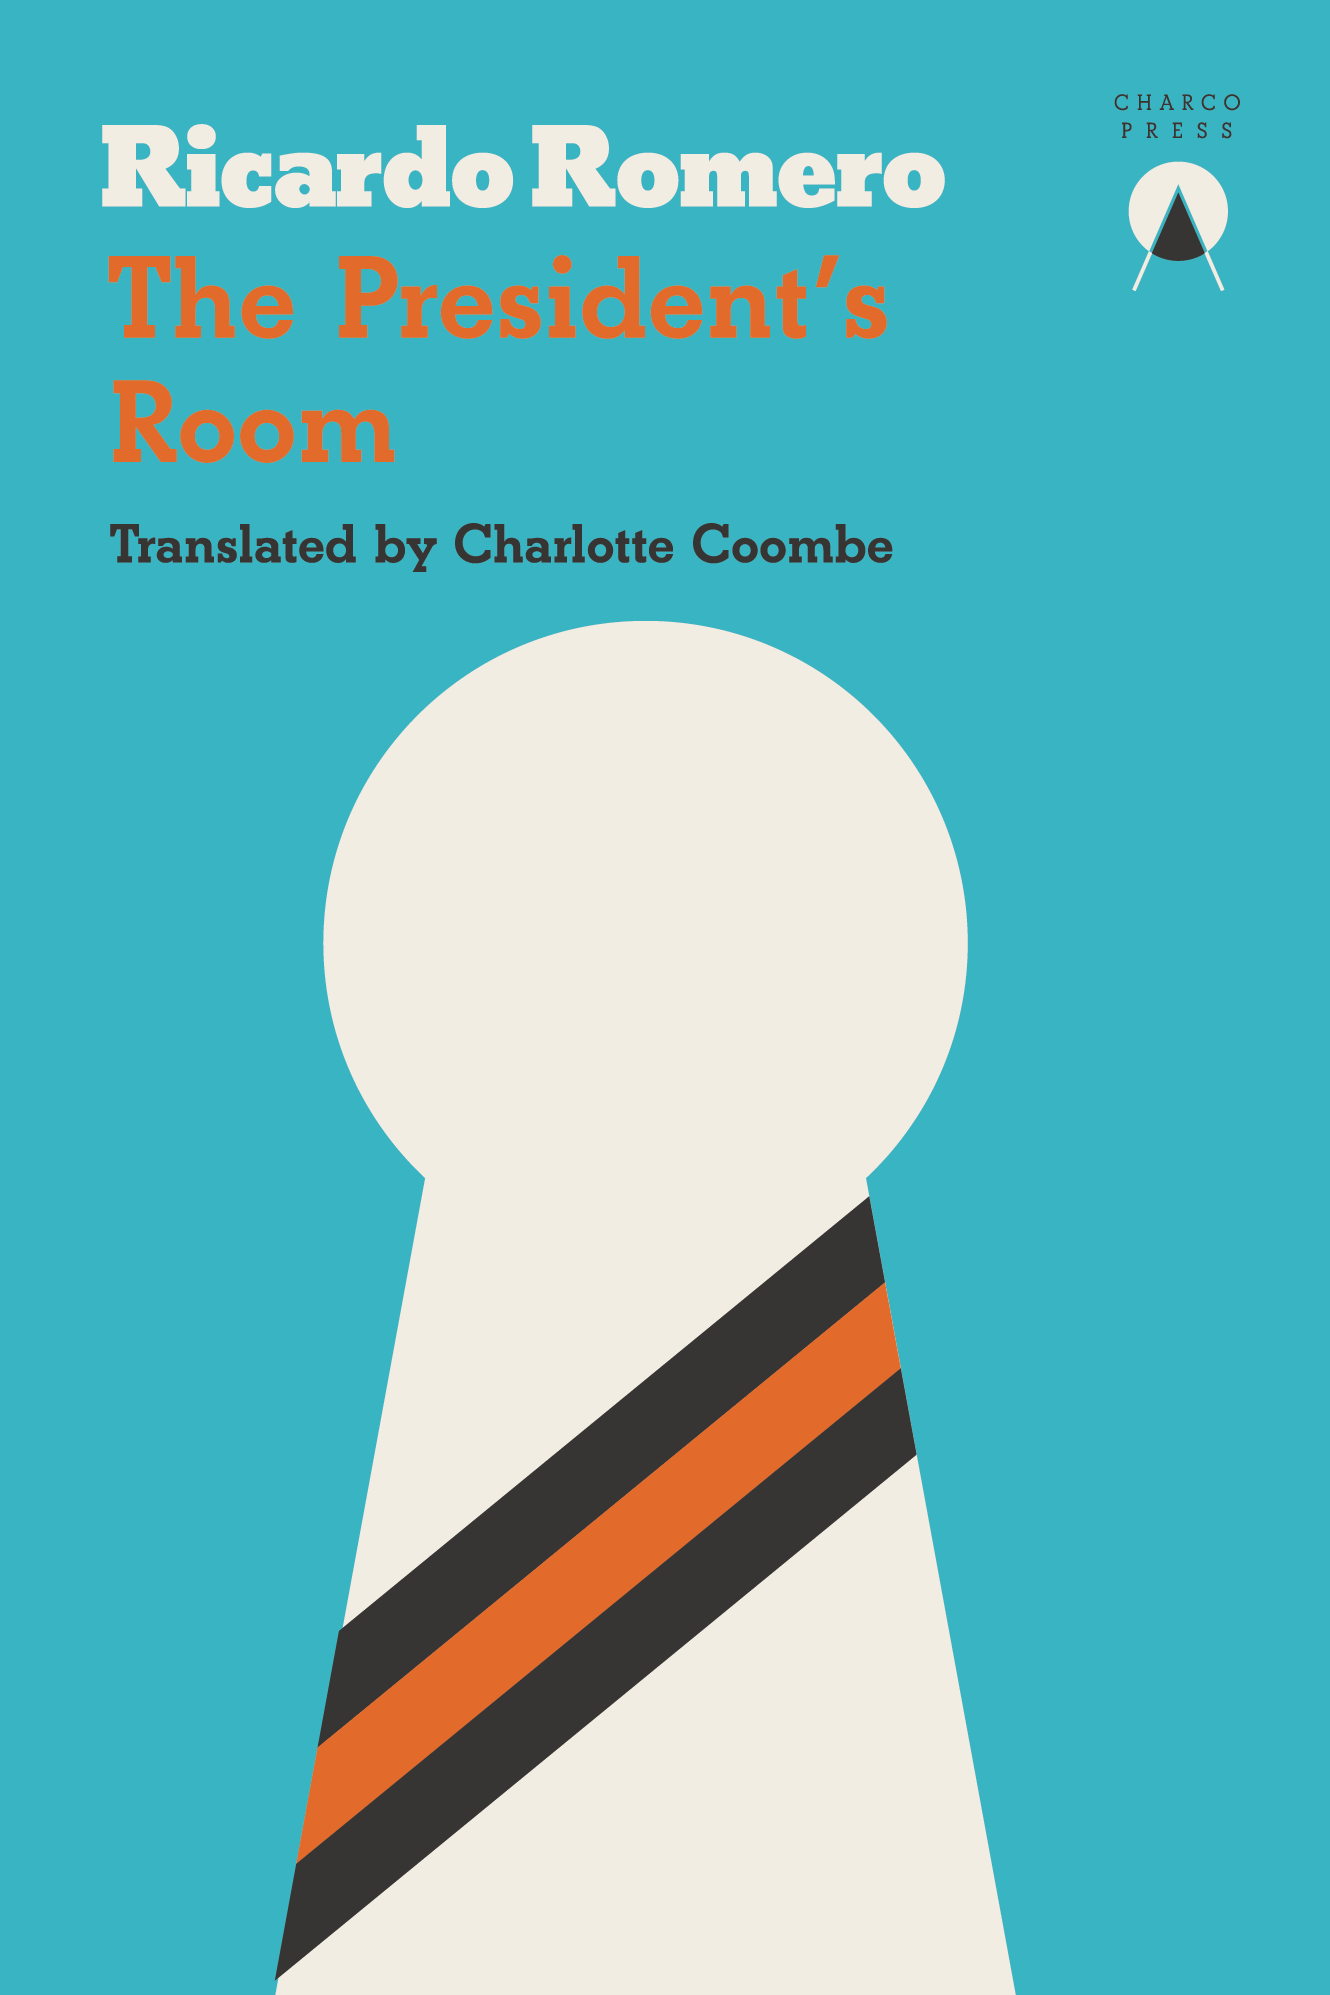 Cover courtesy of Charco Press